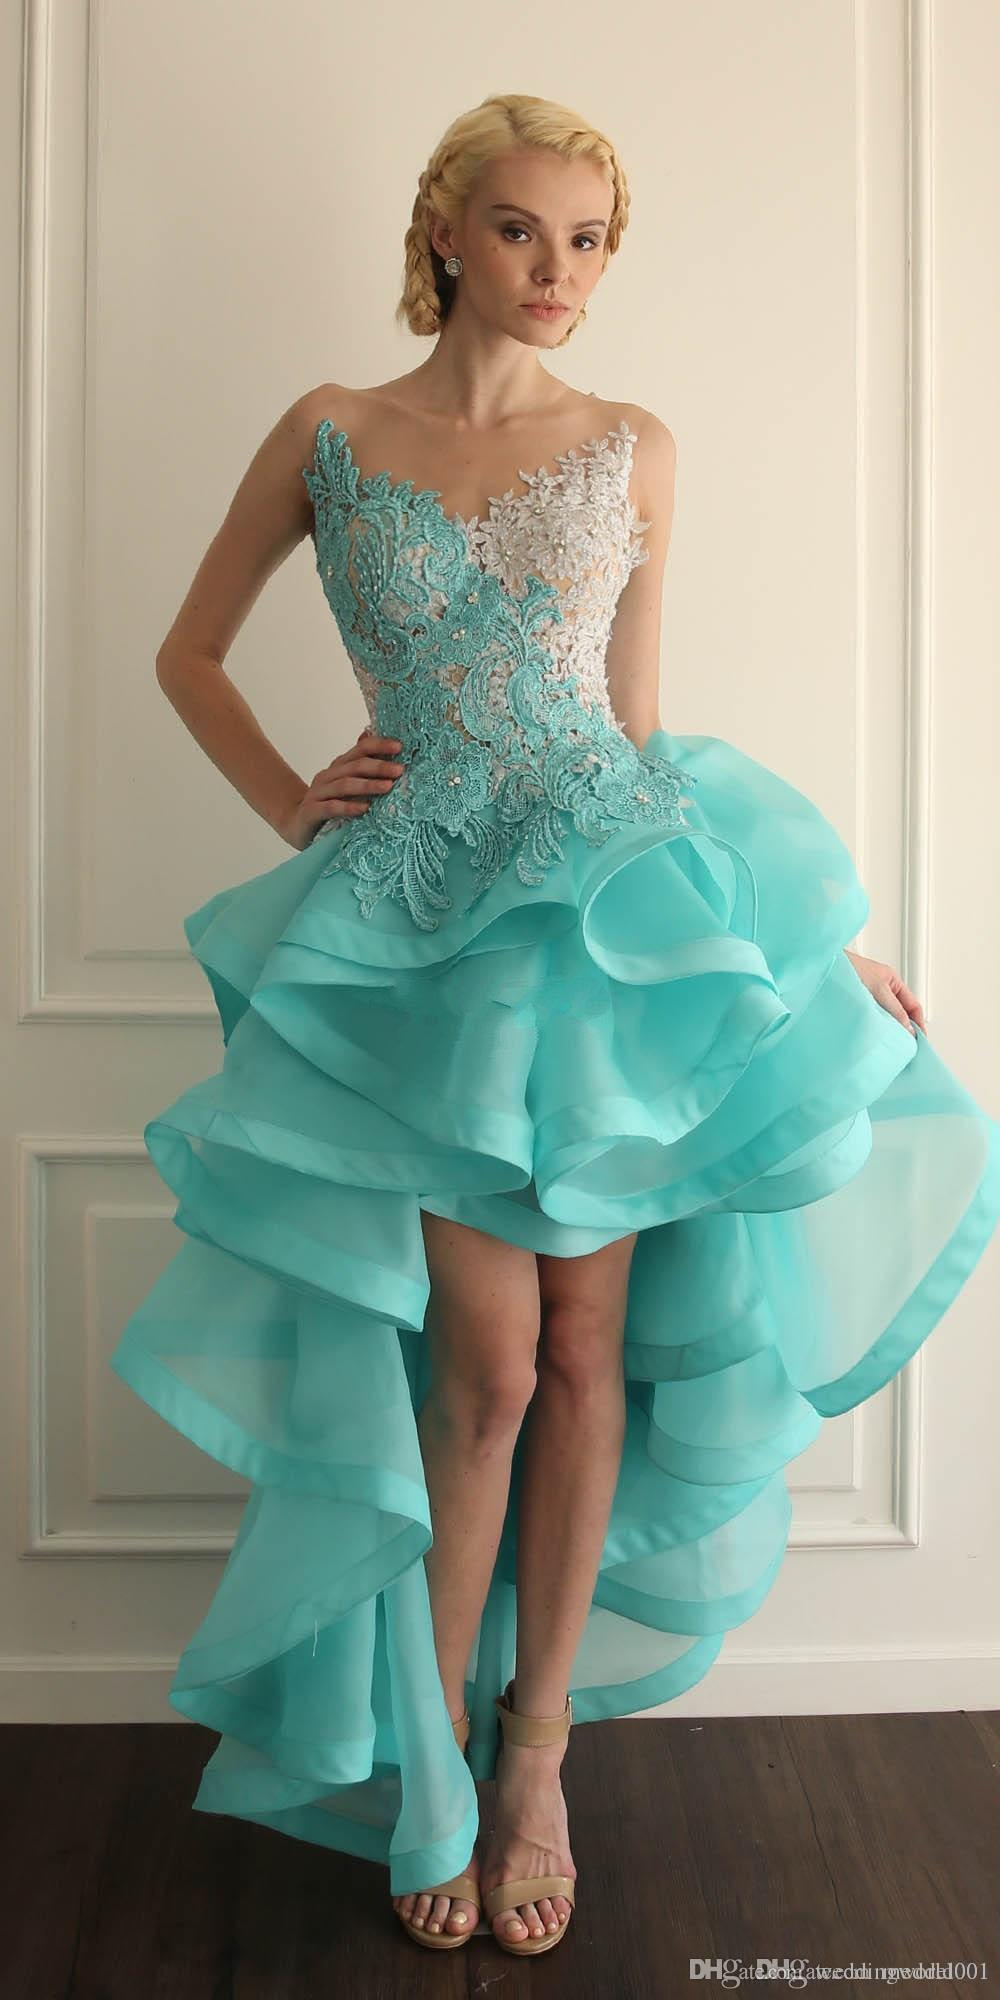 Jewel Sheer Neckline High Low Short Homecoming Dresses Turquoise Prom Gowns With Lace Applique Backless Ruffles Cocktail Gowns Custom Made